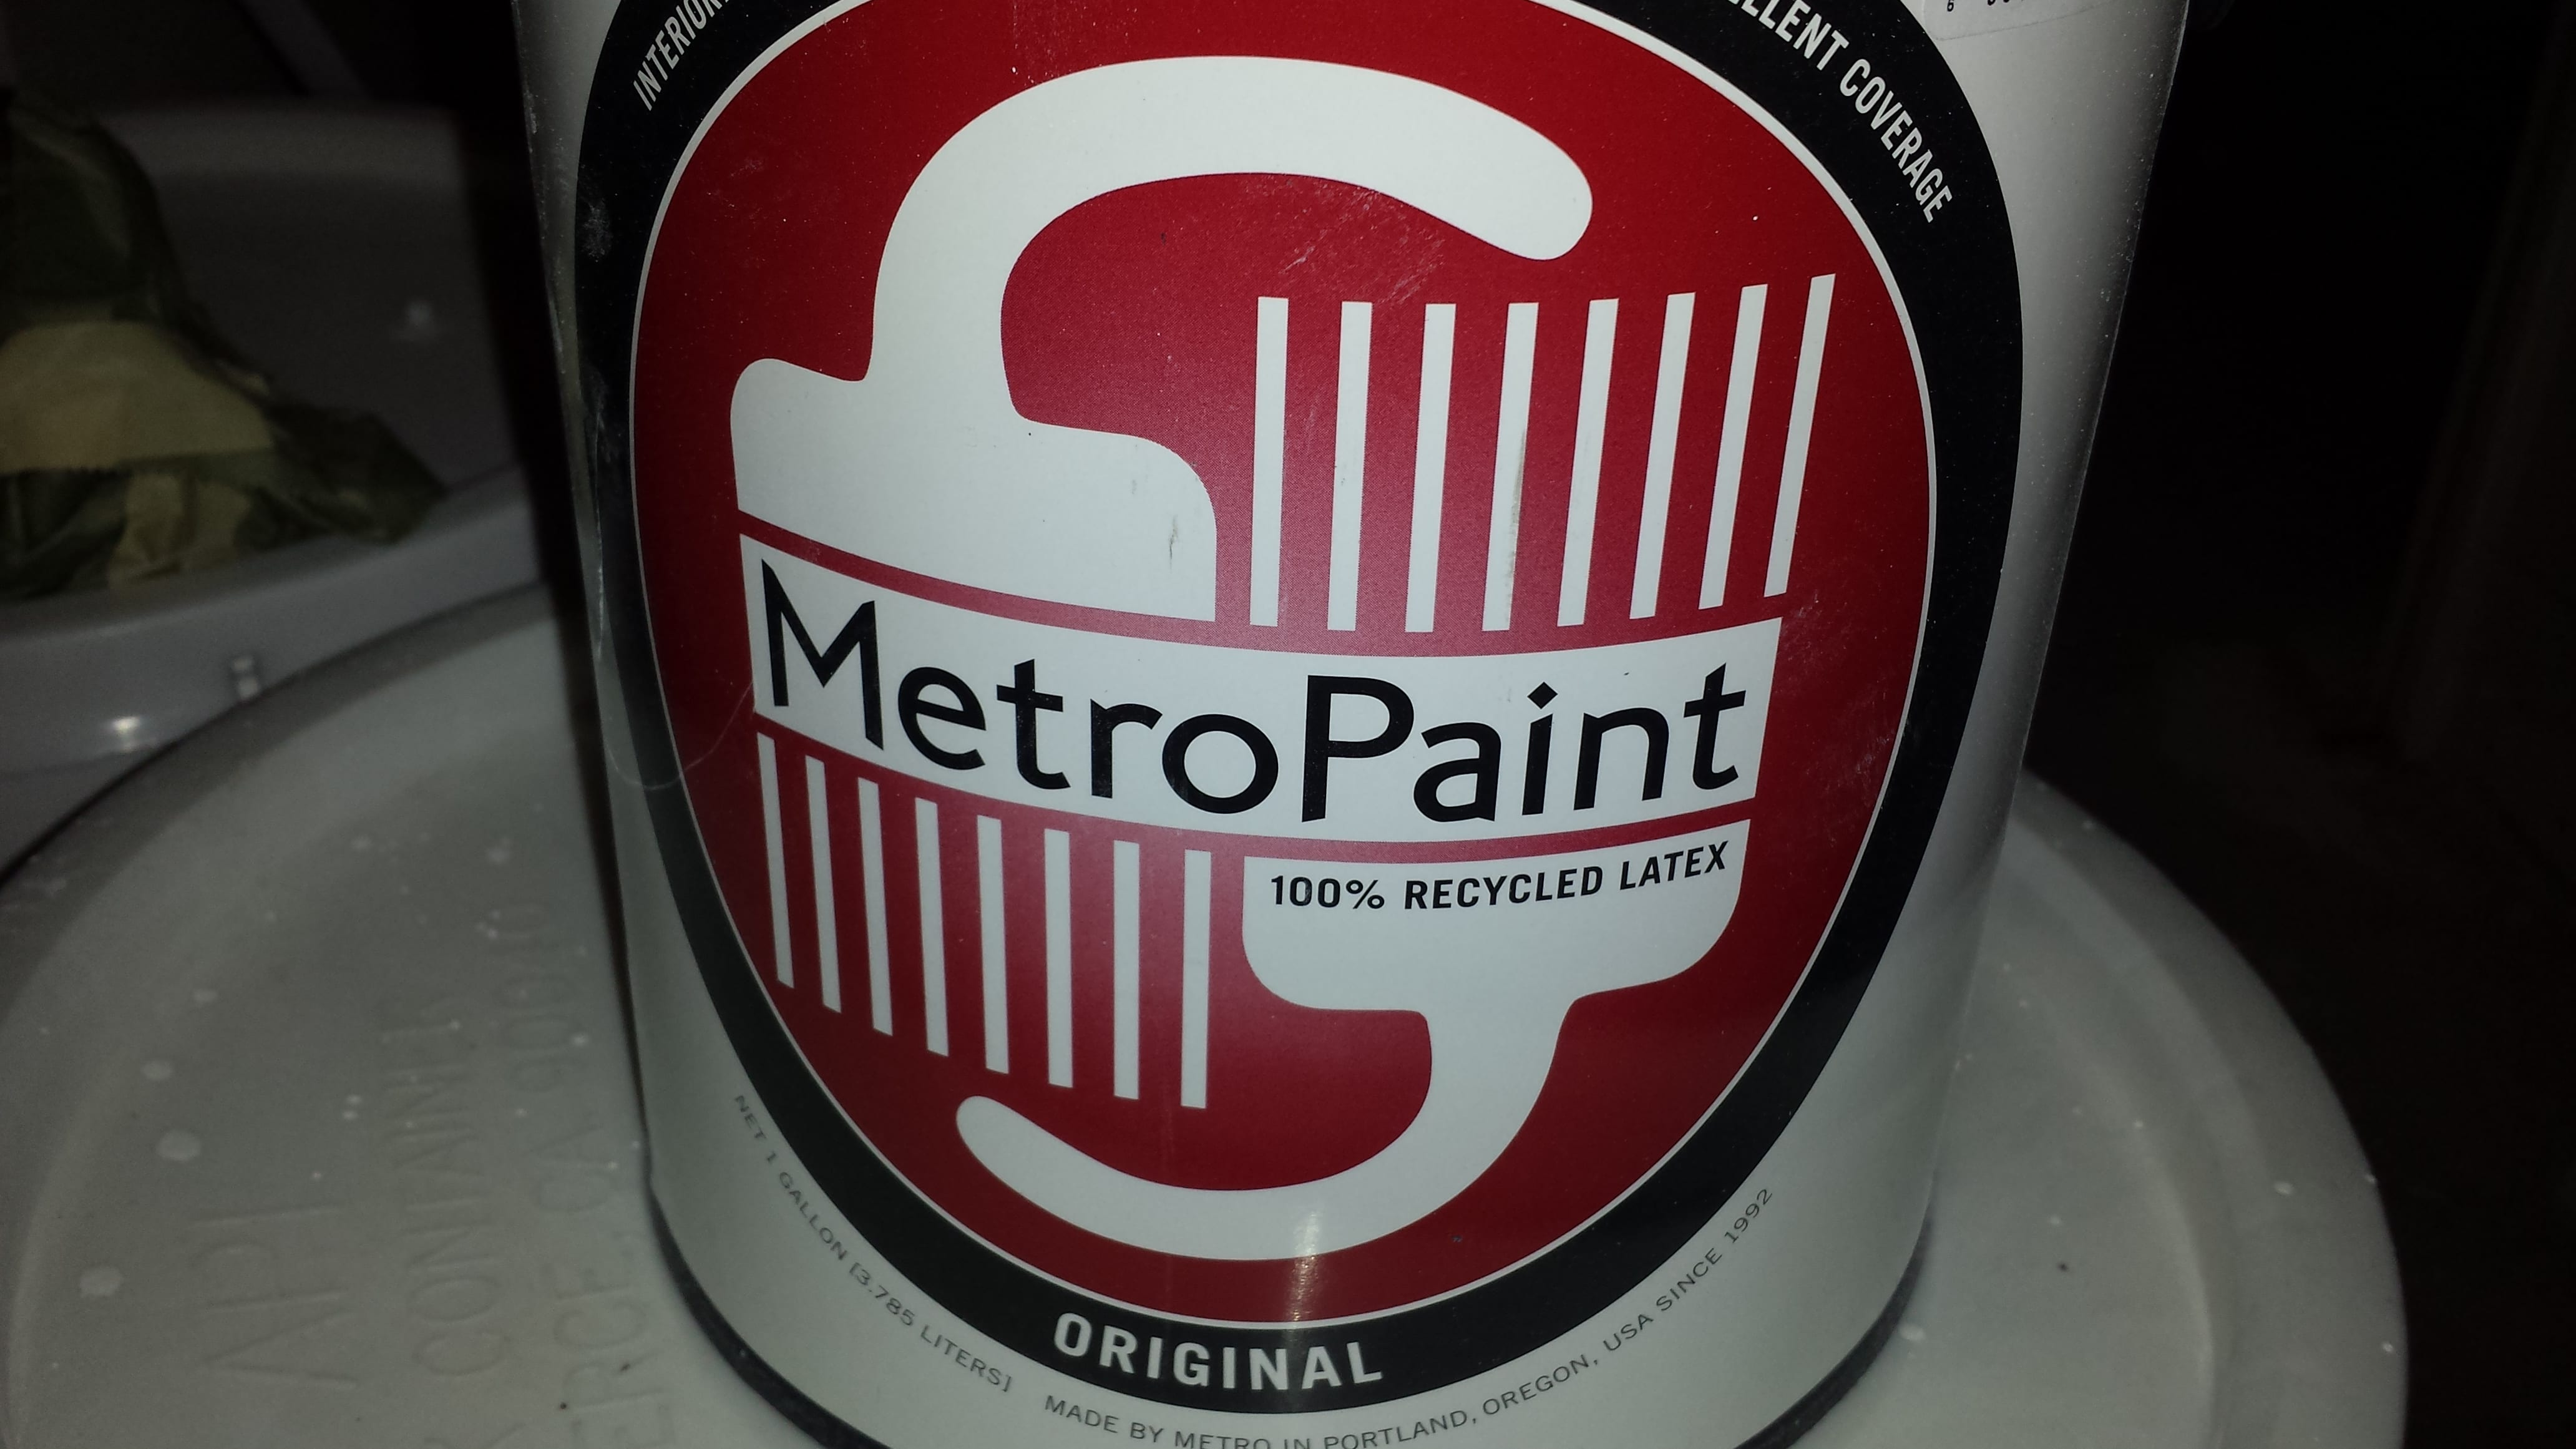 Should you give Metro Paint a try?